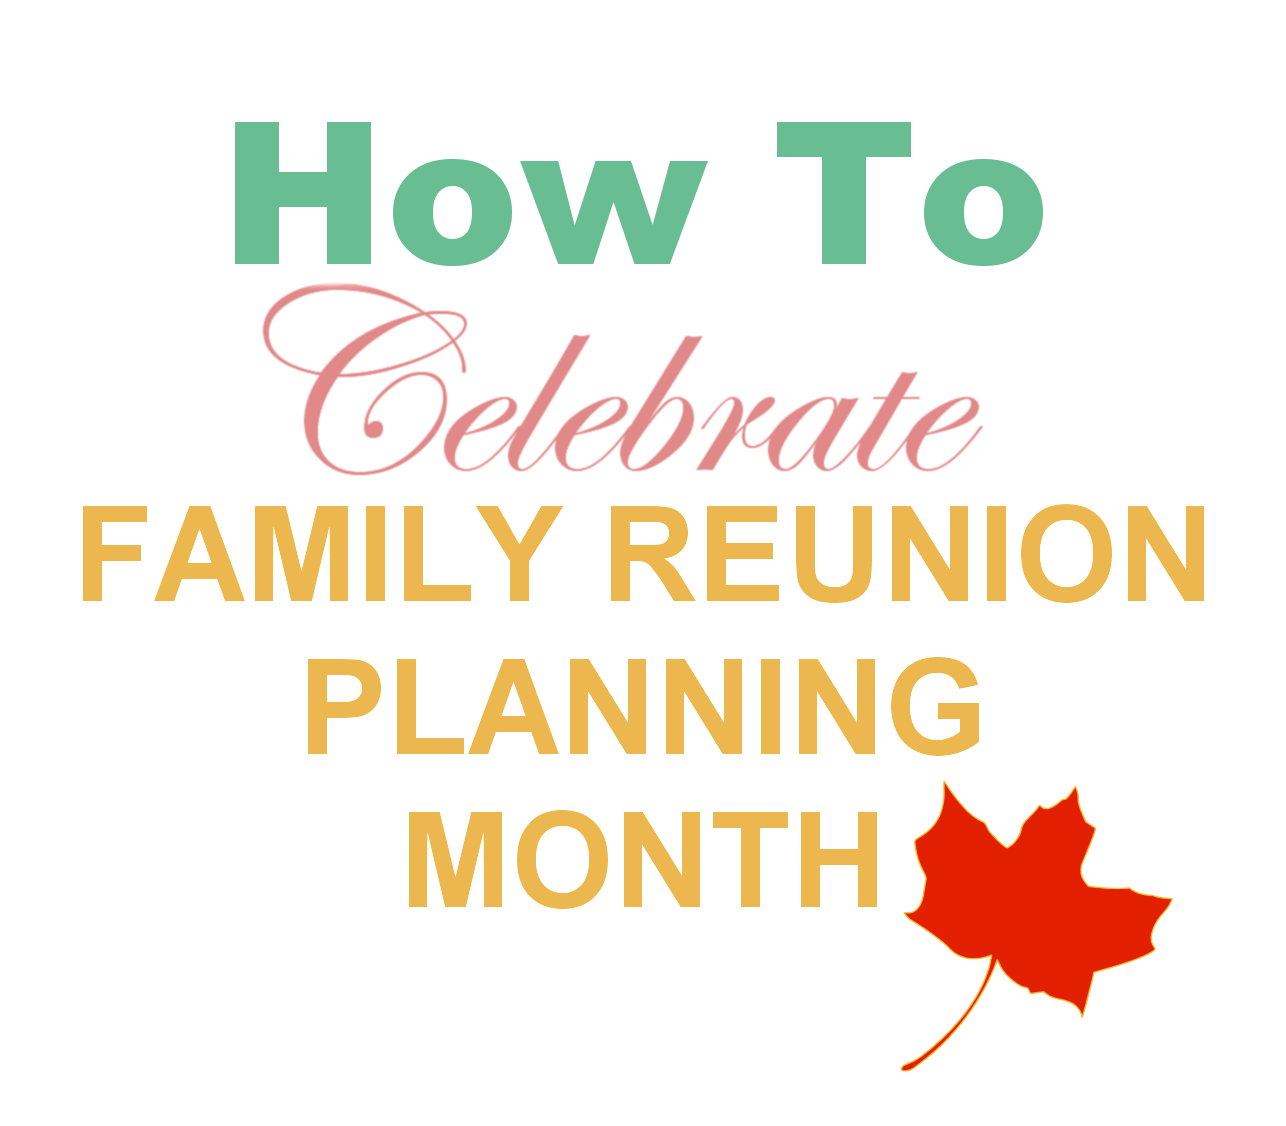 Family Reunion Planning Guides Apps And Books November